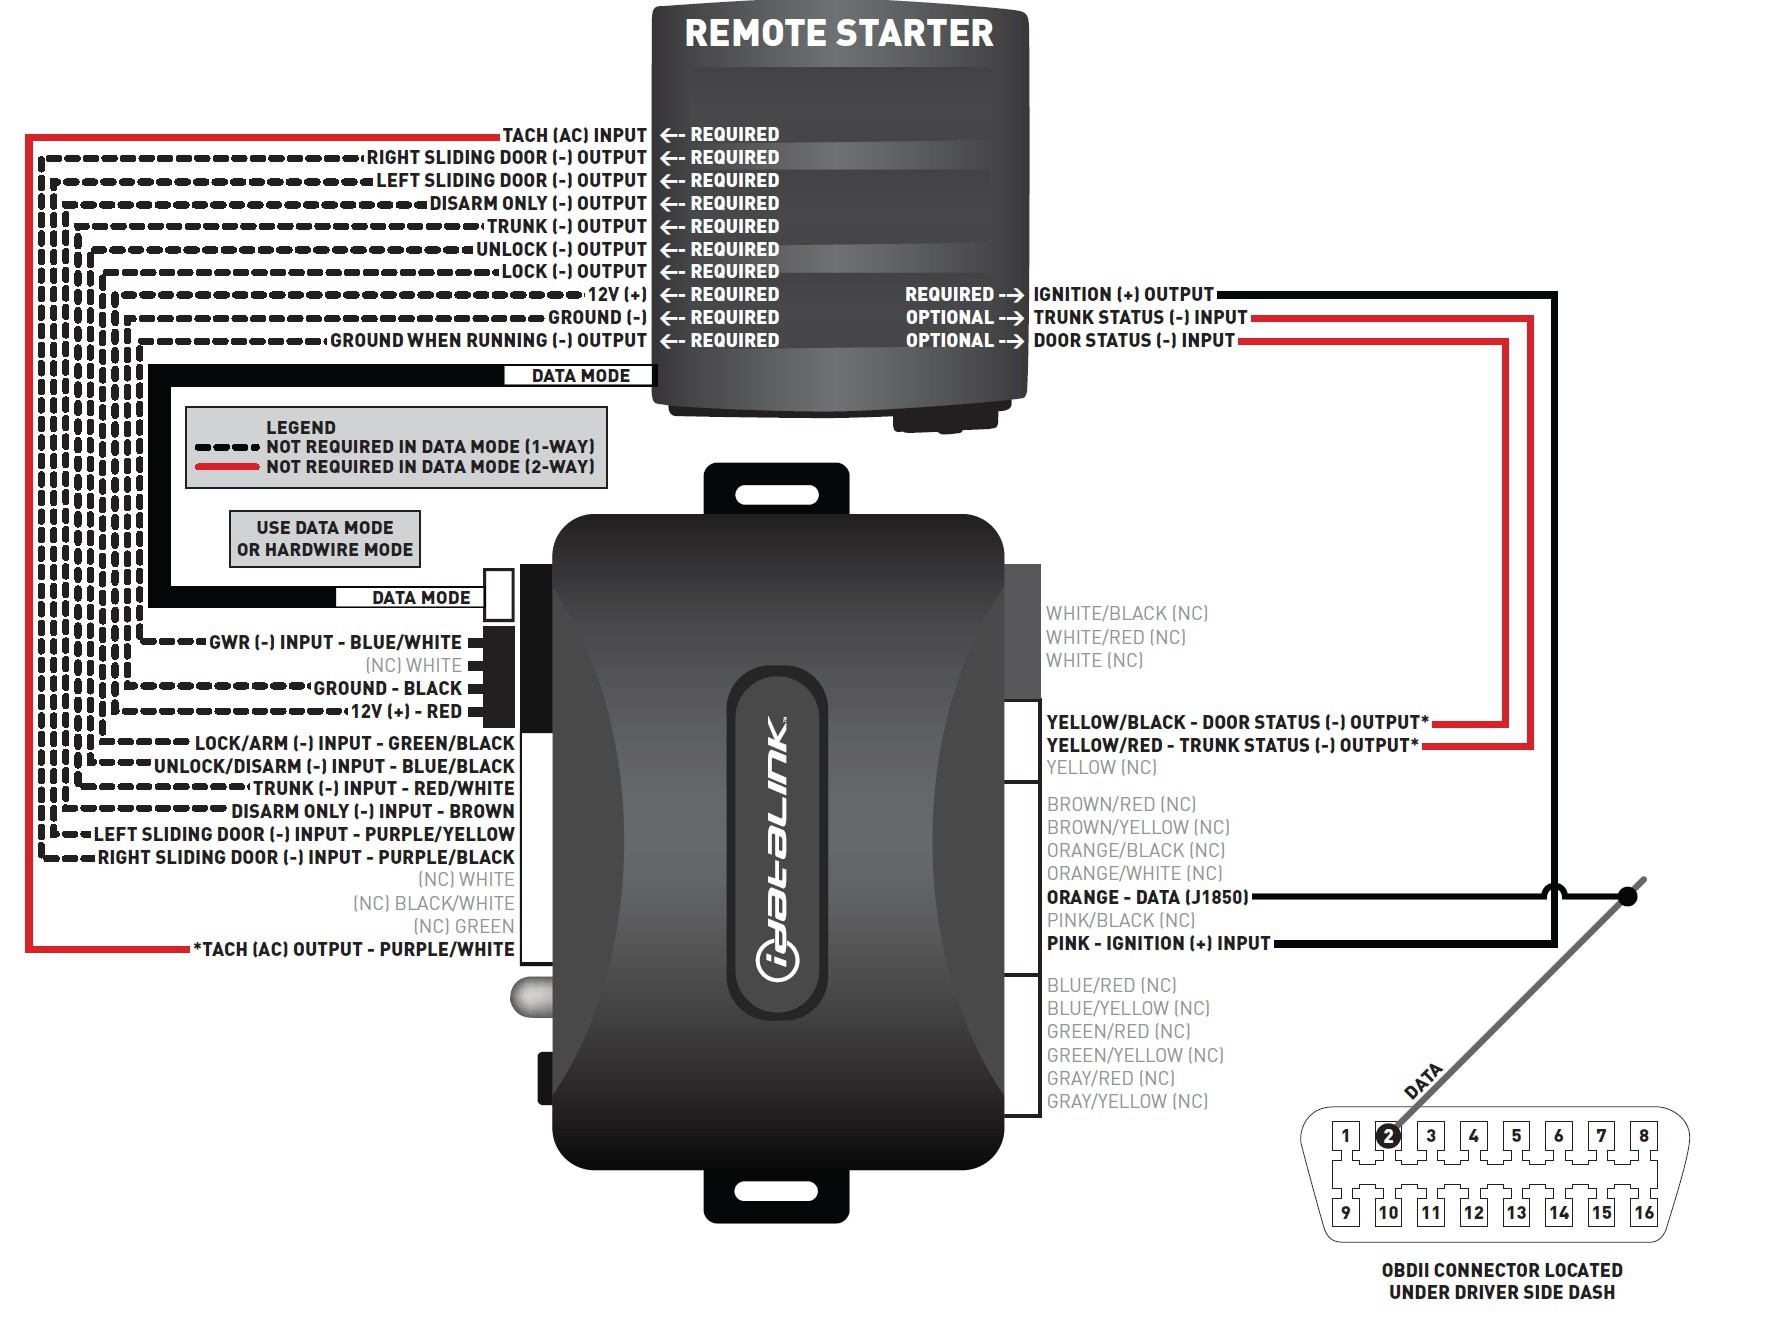 Compustar Remote Start Wiring Diagram Viper 350hv Wiring Diagram ...